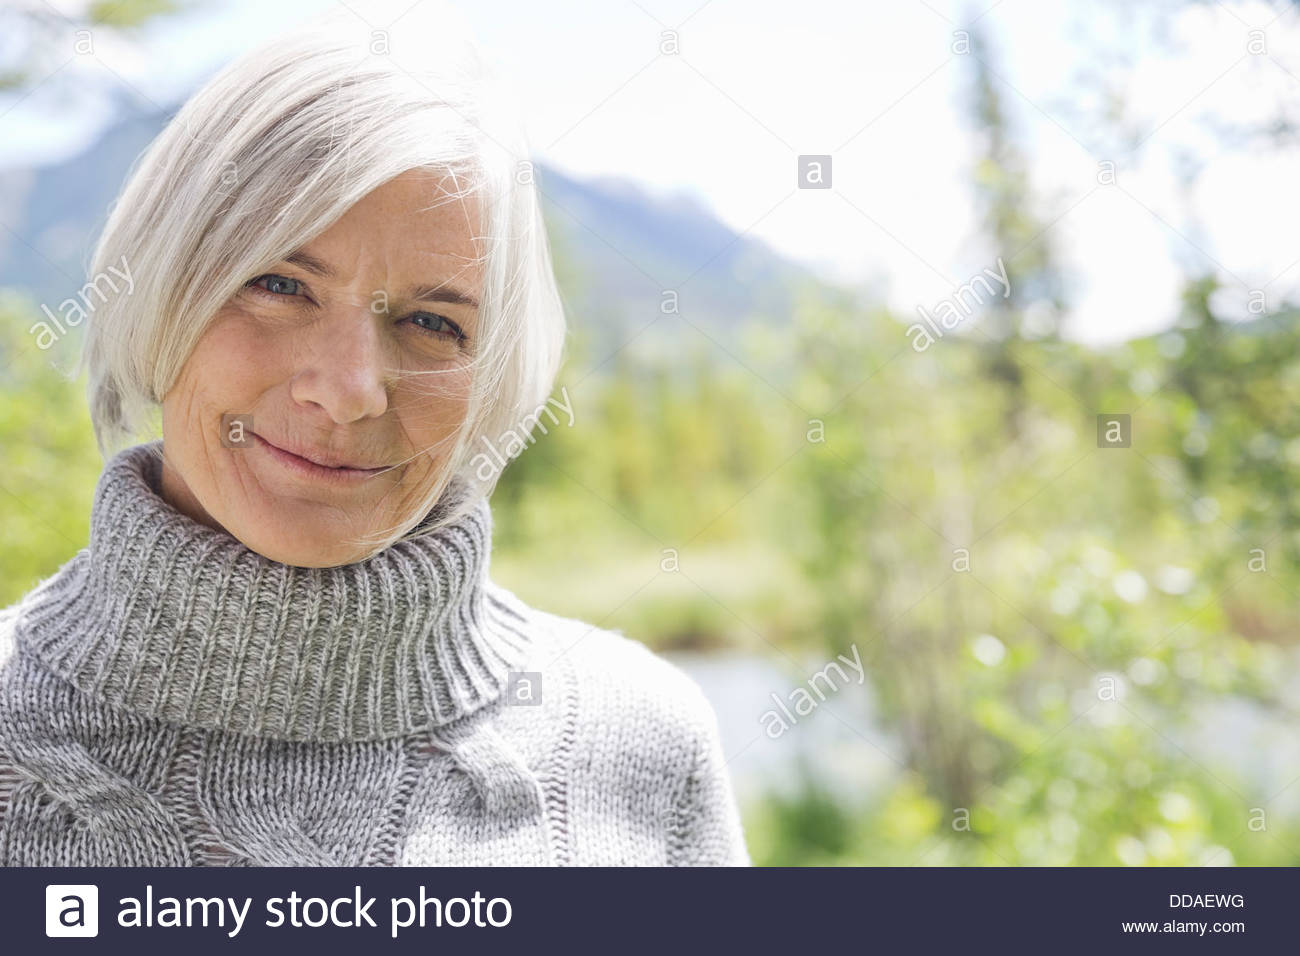 Close-up of young woman smiling in forest Photo Stock